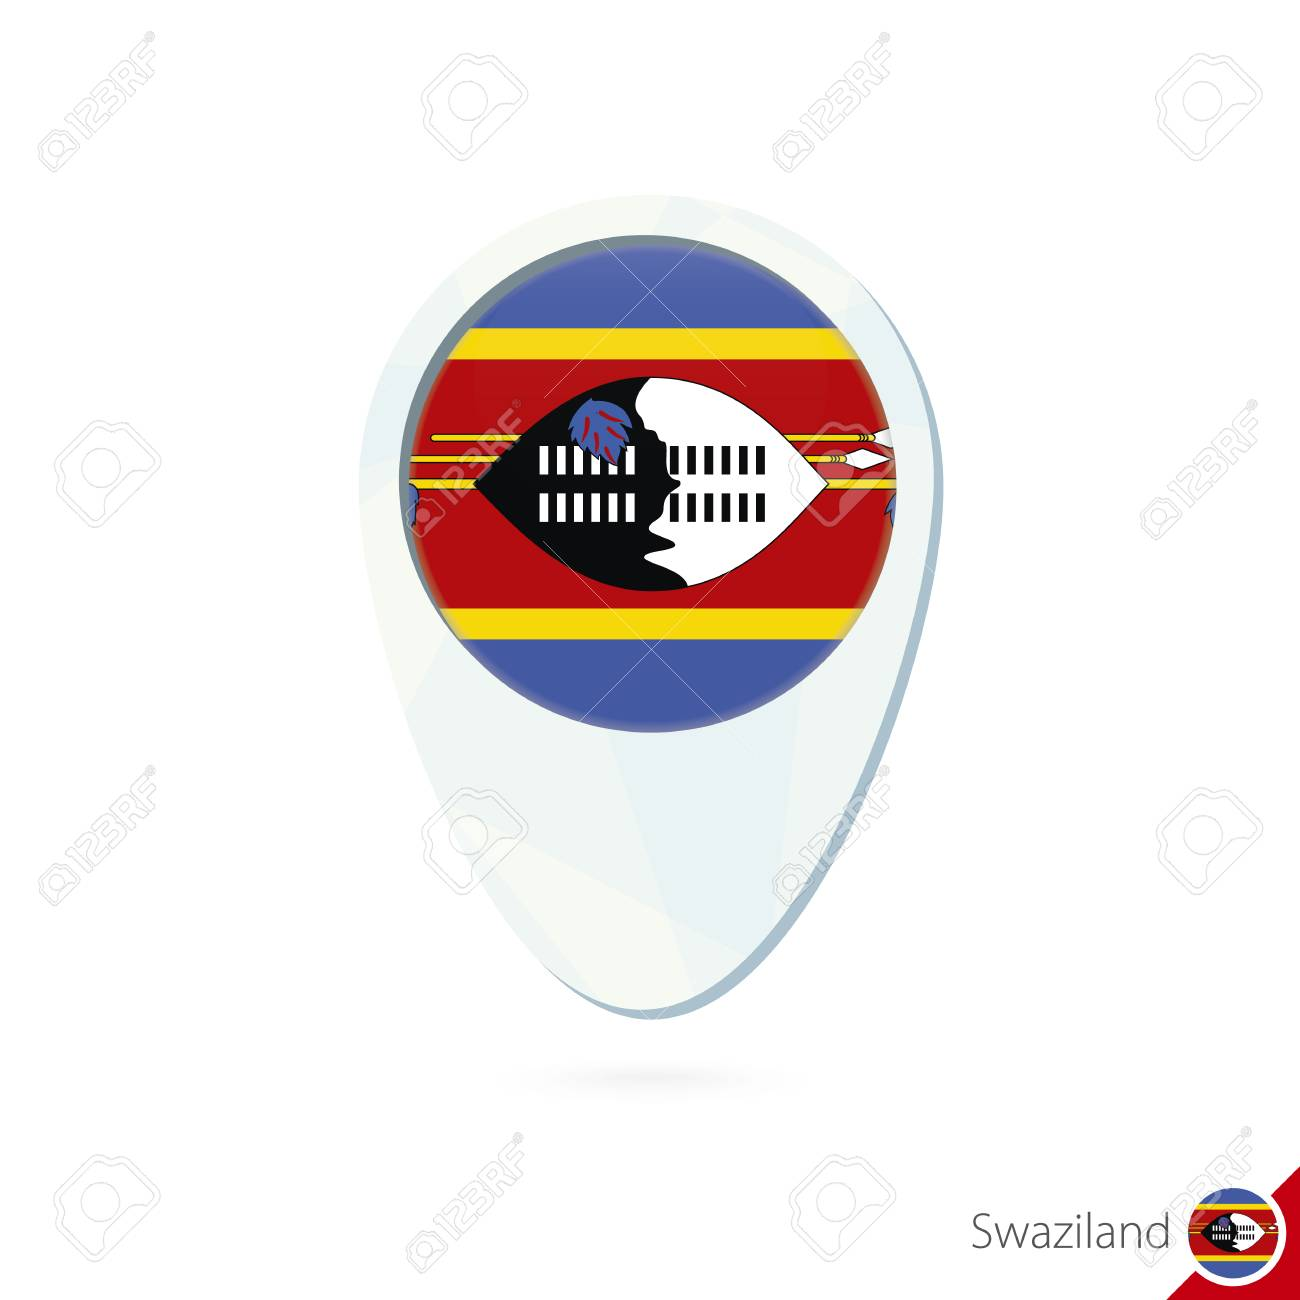 Swaziland Flag Location Map Pin Icon On White Background. Vector ...